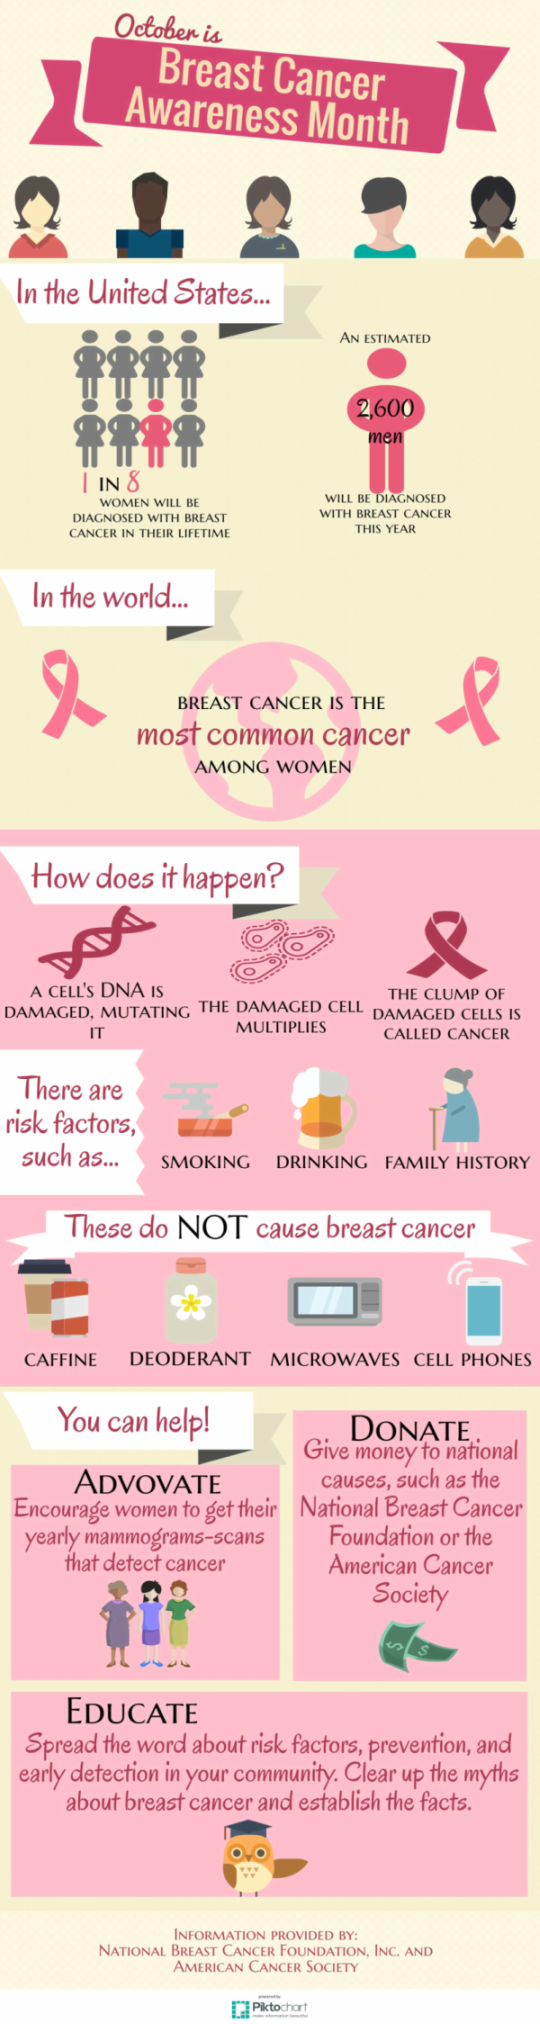 breast-cancer-a_16668982_fd64f4b9b5dec9384d69b70b1a654c8990e8a9ba